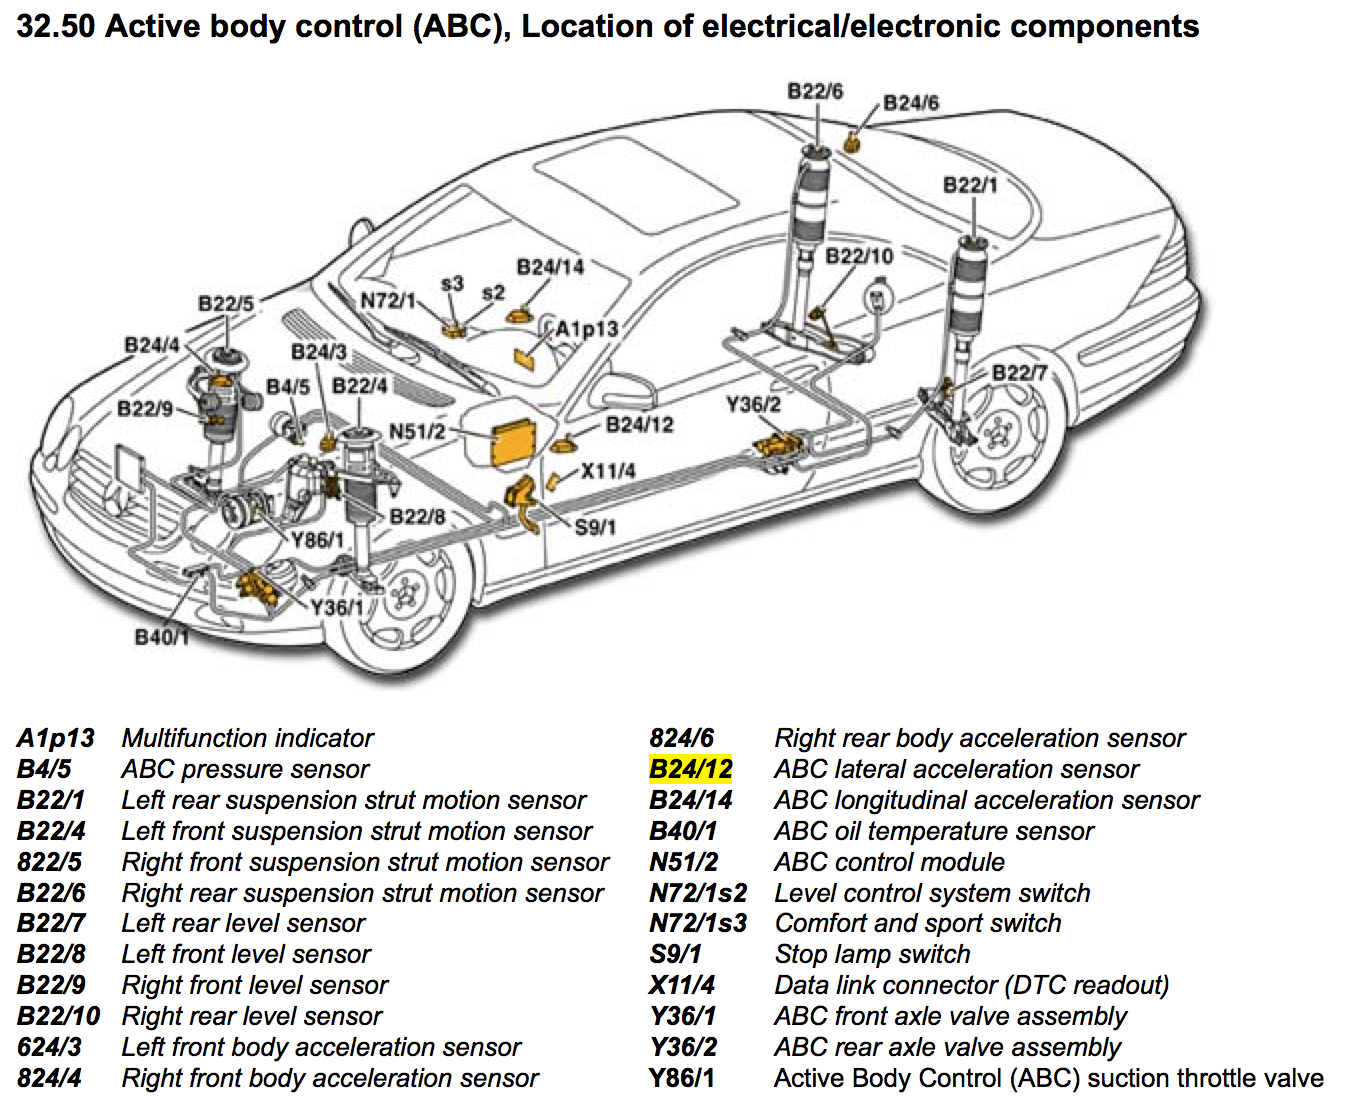 Abc System Troubleshooting on 2010 Mazda 3 Wiring Diagram